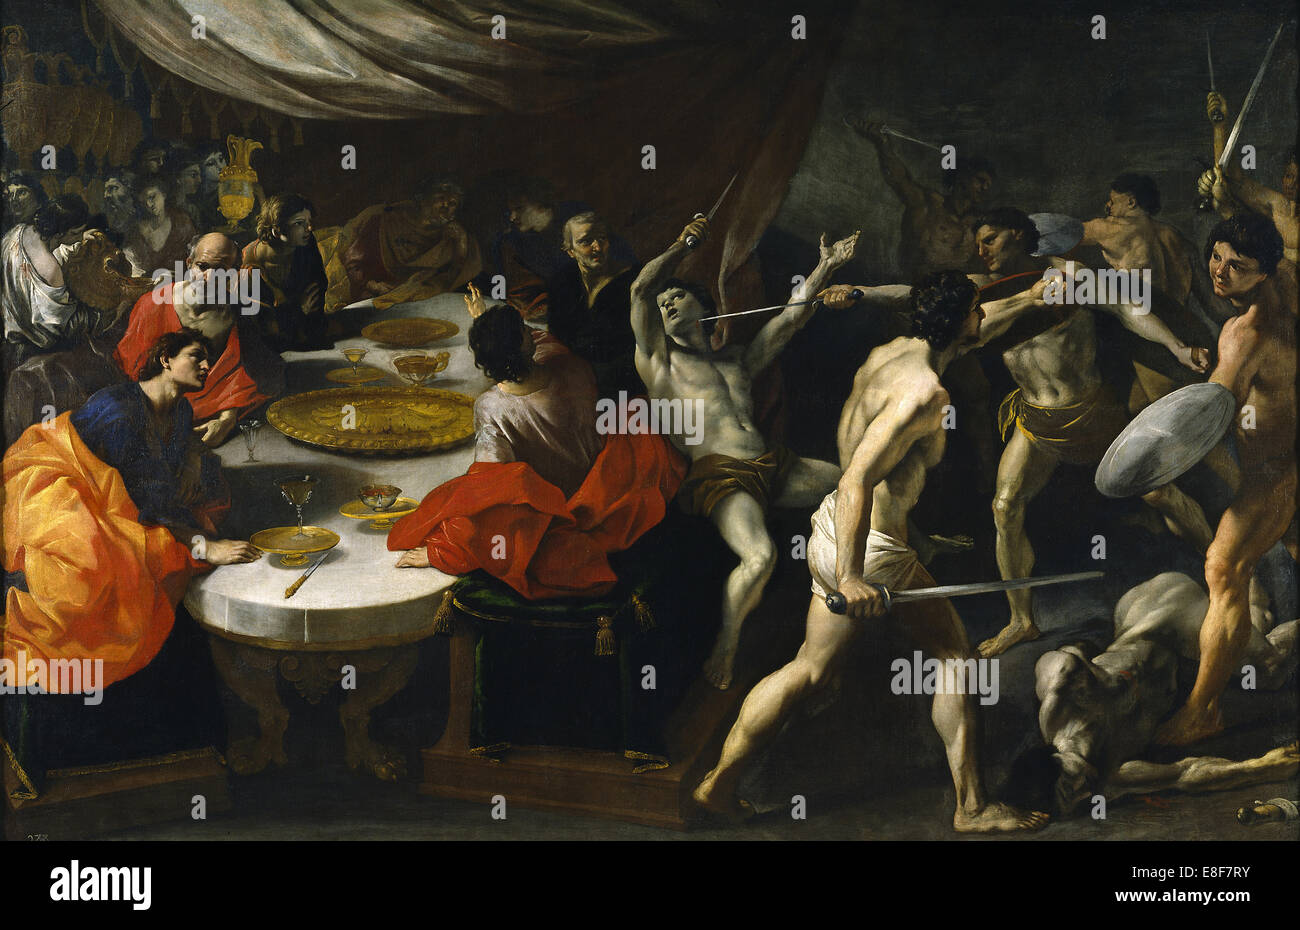 Gladiator fights at a Banquet. Artist: Lanfranco, Giovanni (1582-1647) - Stock Image